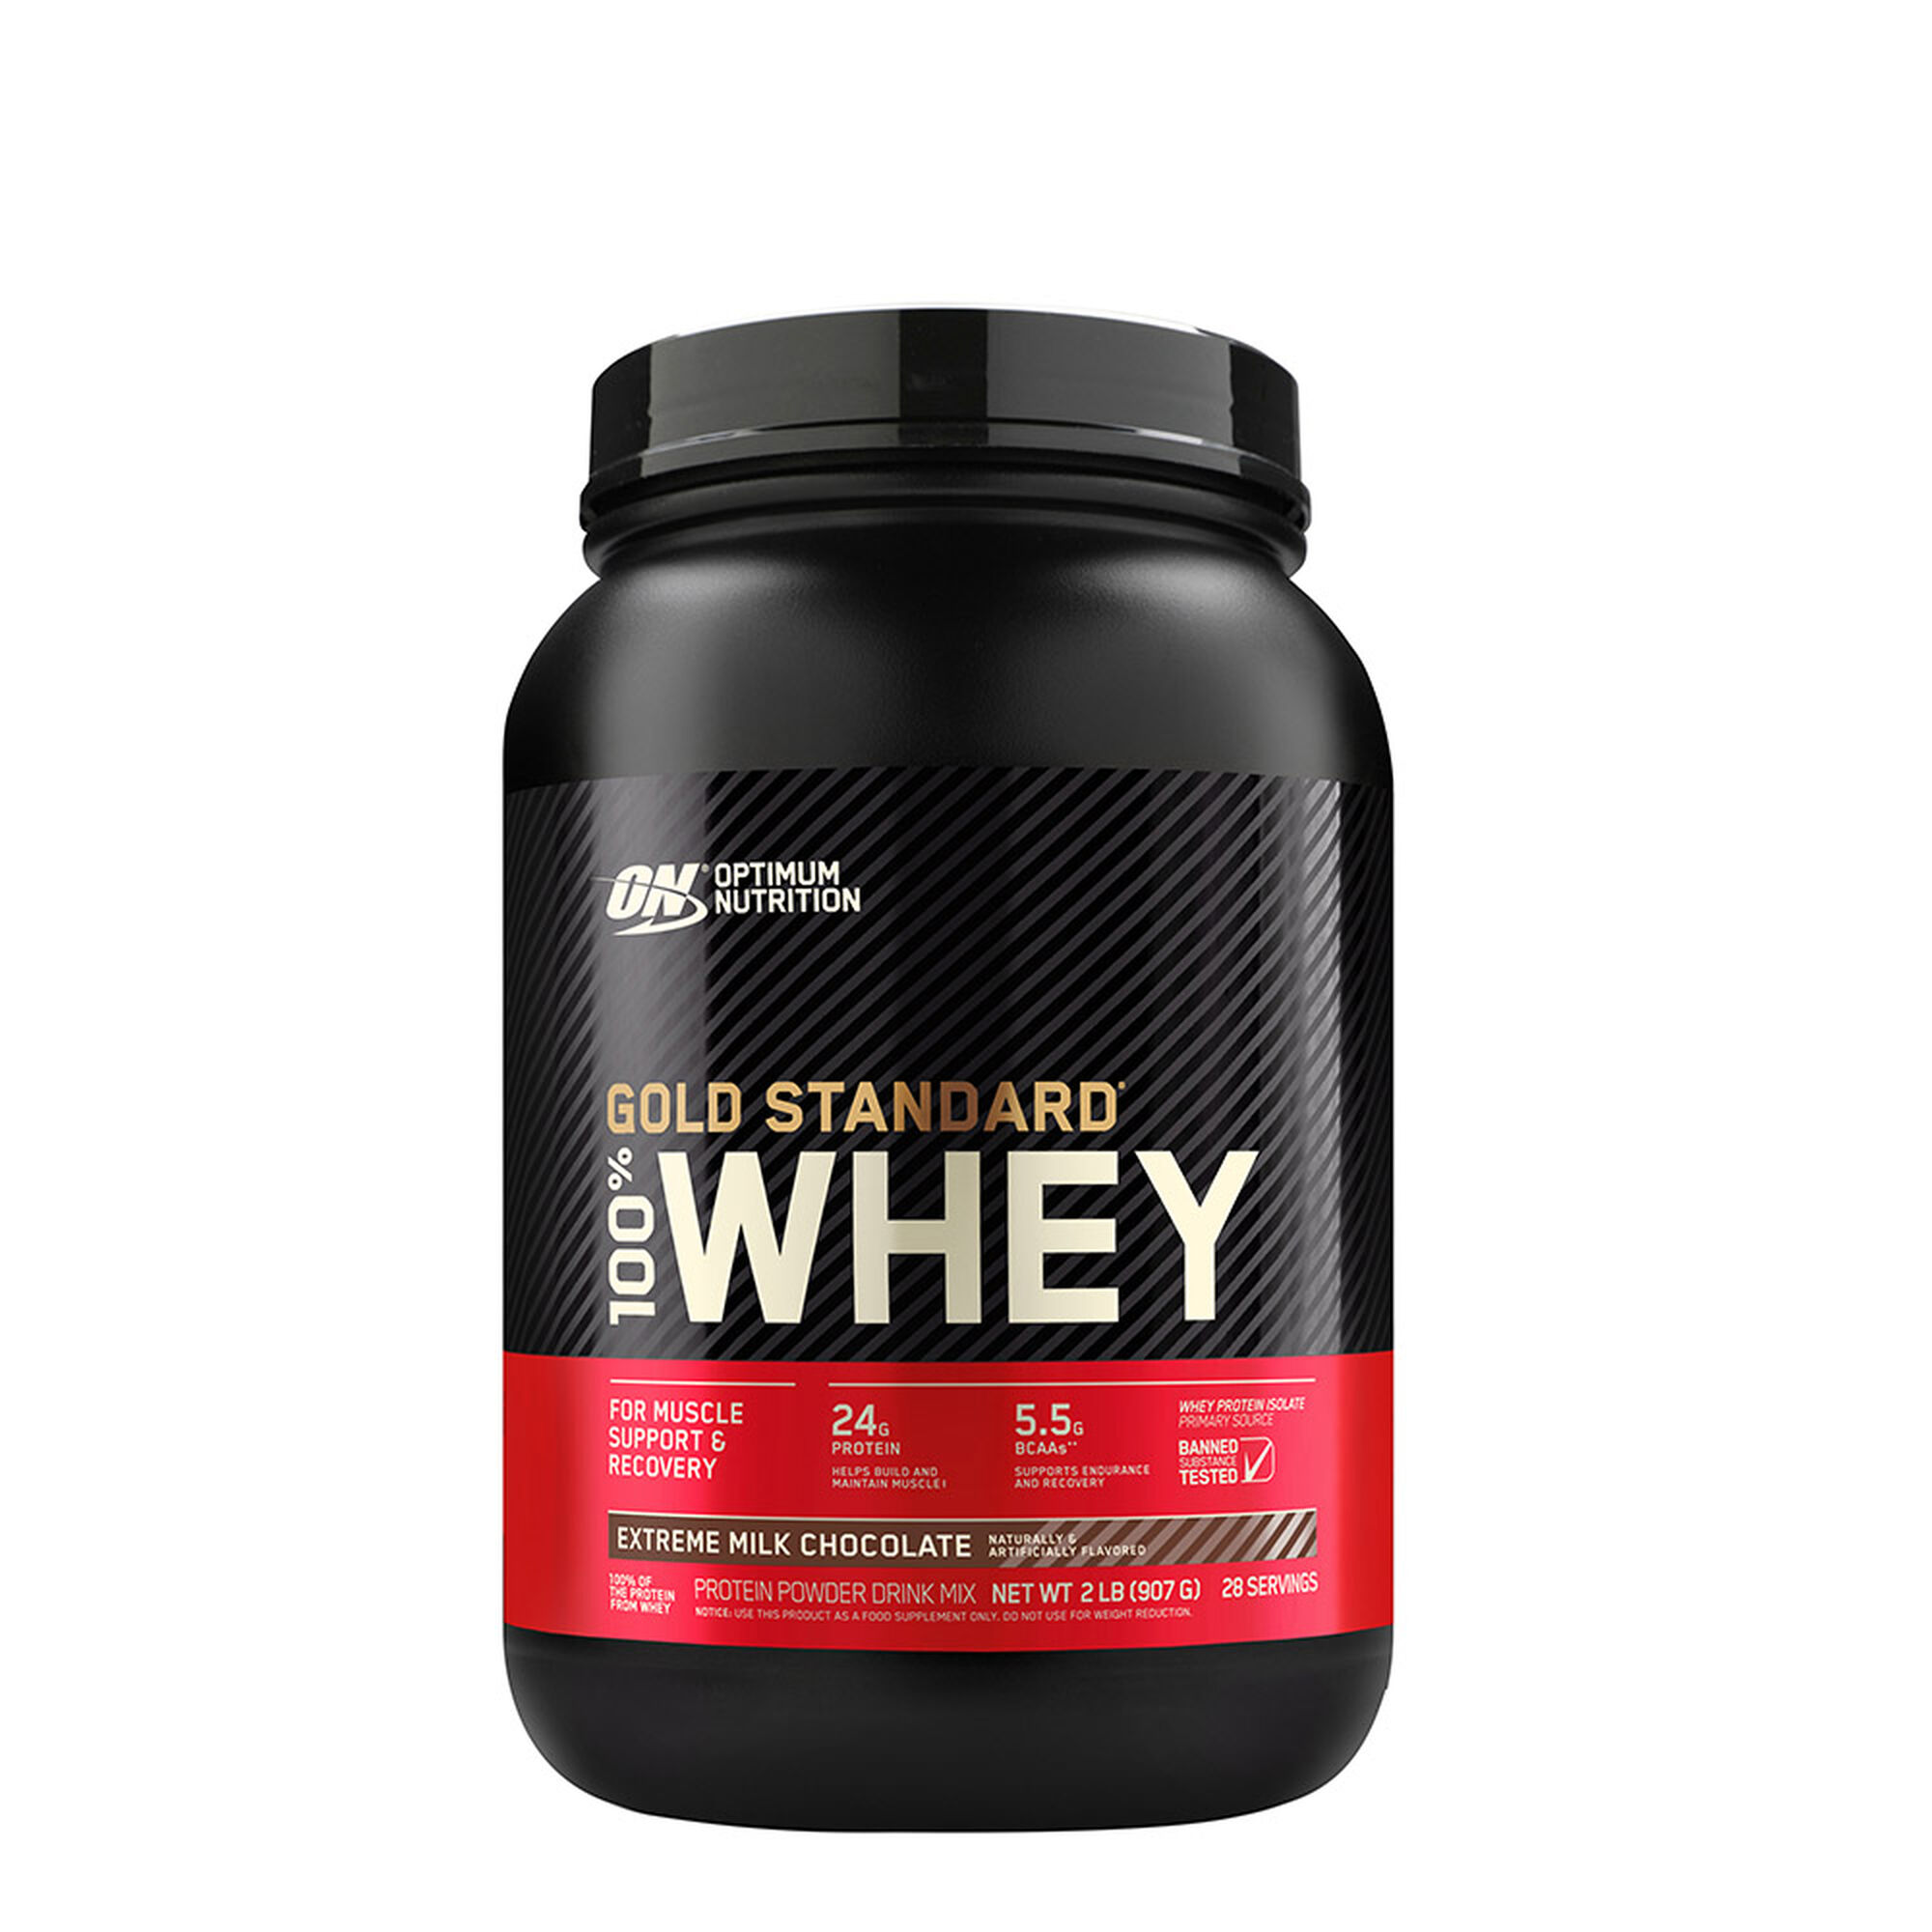 Optimum Nutrition Whey Protein Extreme Milk Chocolate Gnc